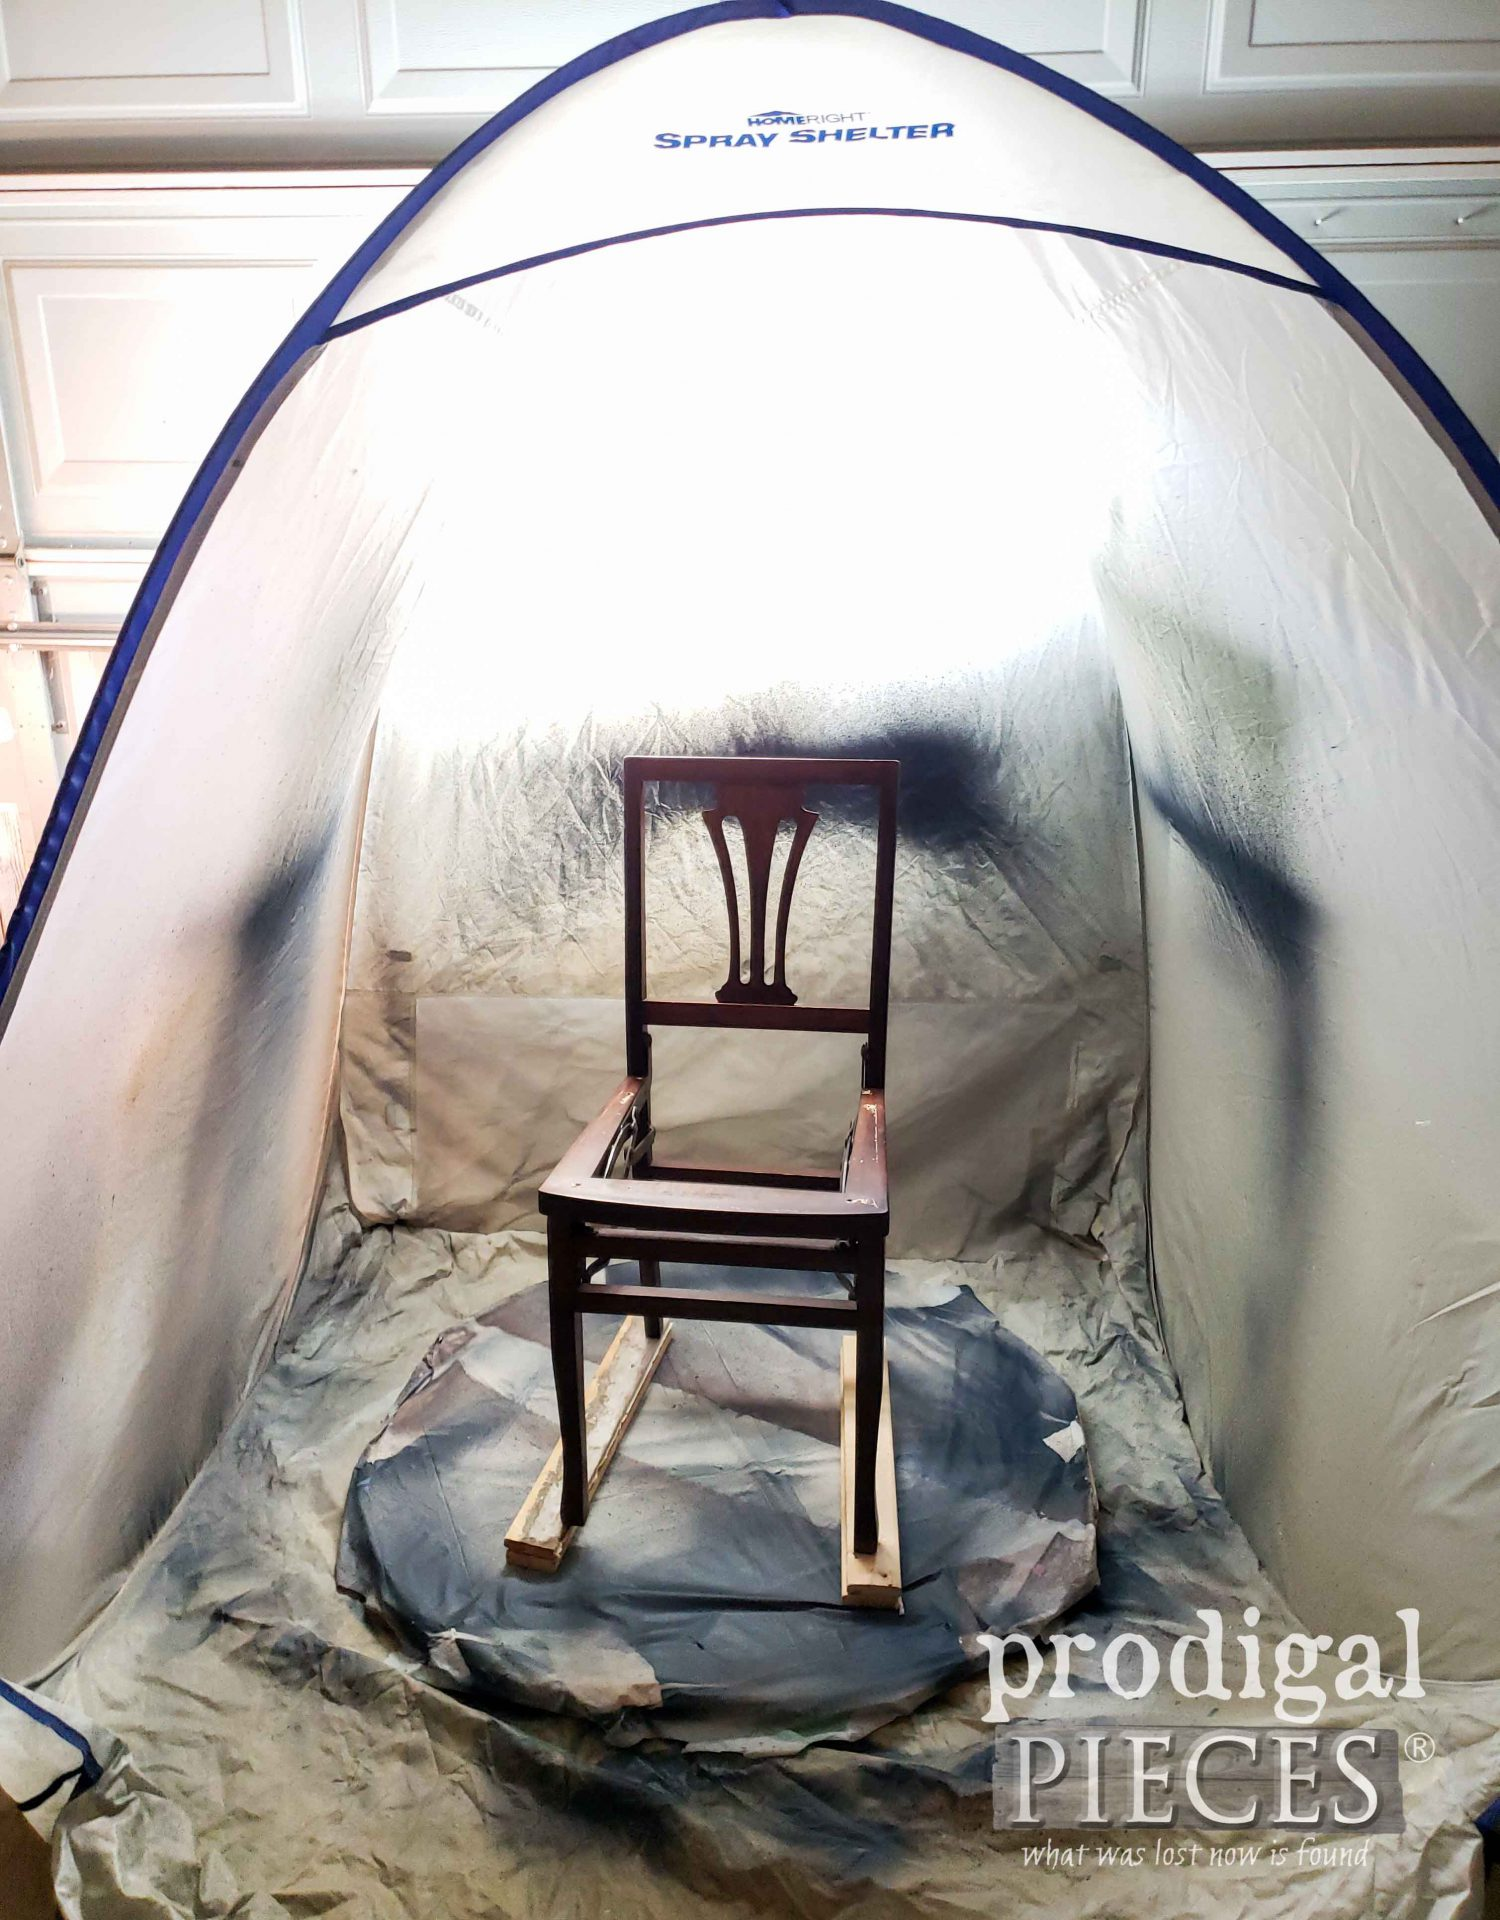 HomeRight Medium Spray Shelter with DIY Furniture Turn Table by Larissa of Prodigal Pieces | prodigalpieces.com #prodigalpieces